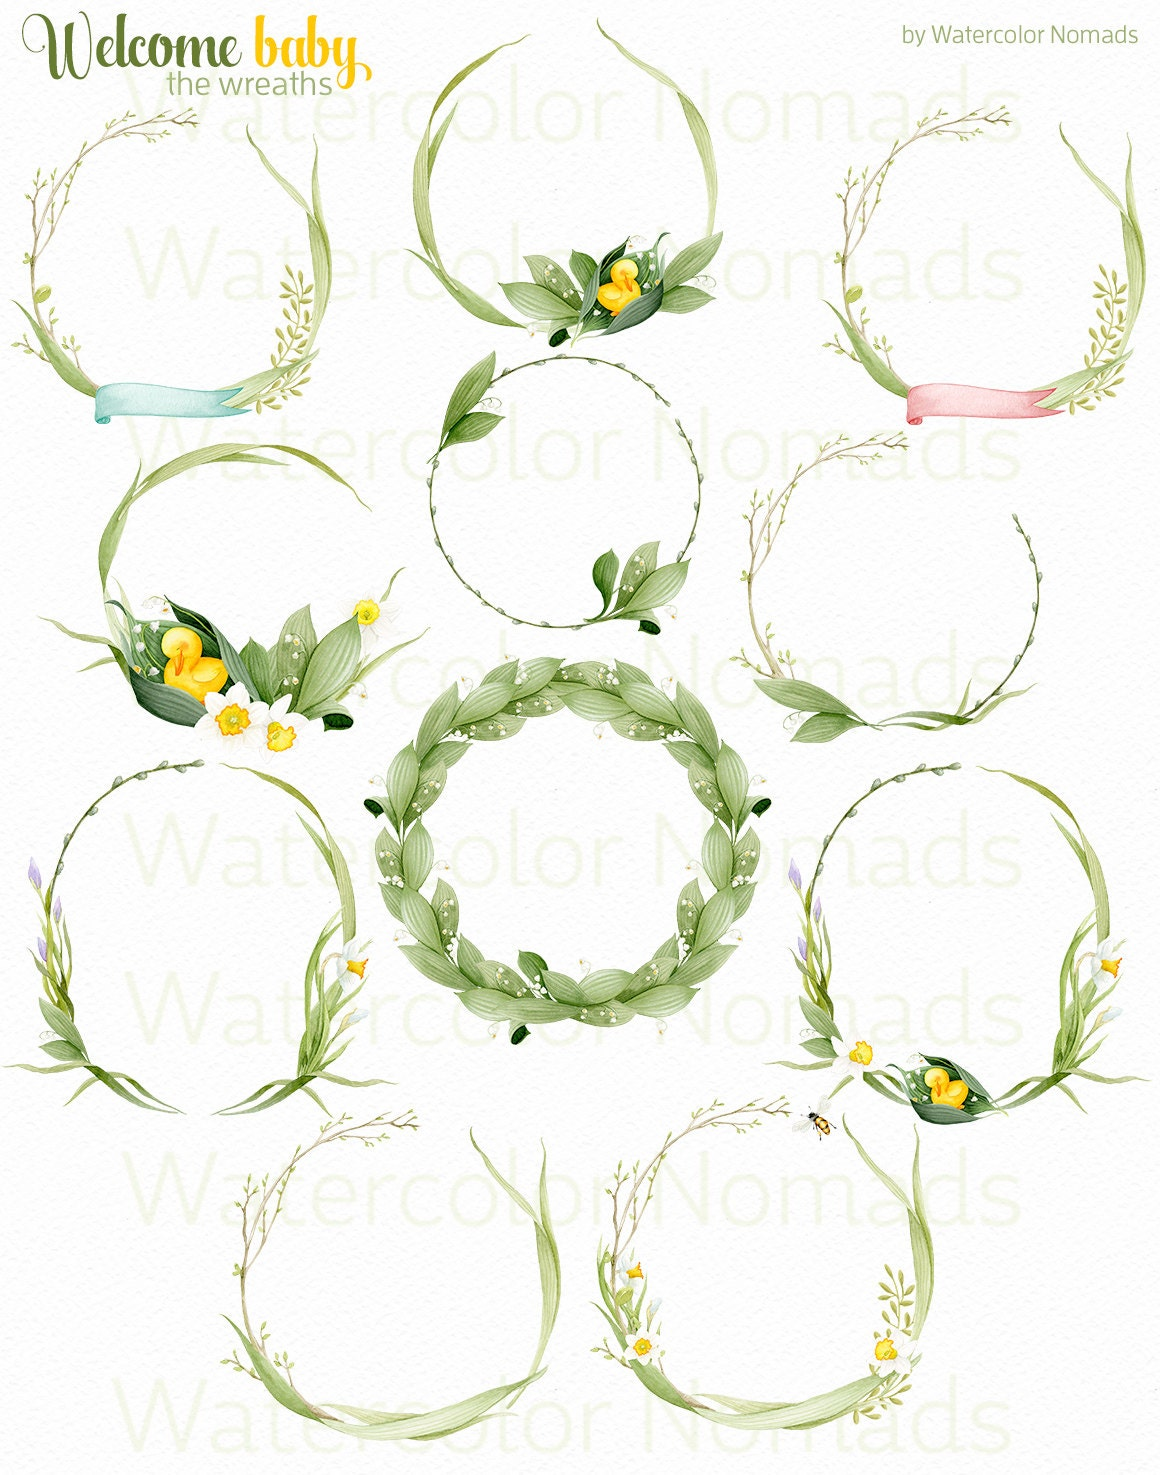 Comfortable 010 Editor Templates Big 1 Year Experience Resume Format For Java Developer Clean 1 Year Experience Resume In Java J2ee 100 Free Resume Youthful 16 Oz Tumbler Template White2 Circle Template Spring Wreaths Clipart, Lilly Of The Valley, Watercolor Clip Art ..